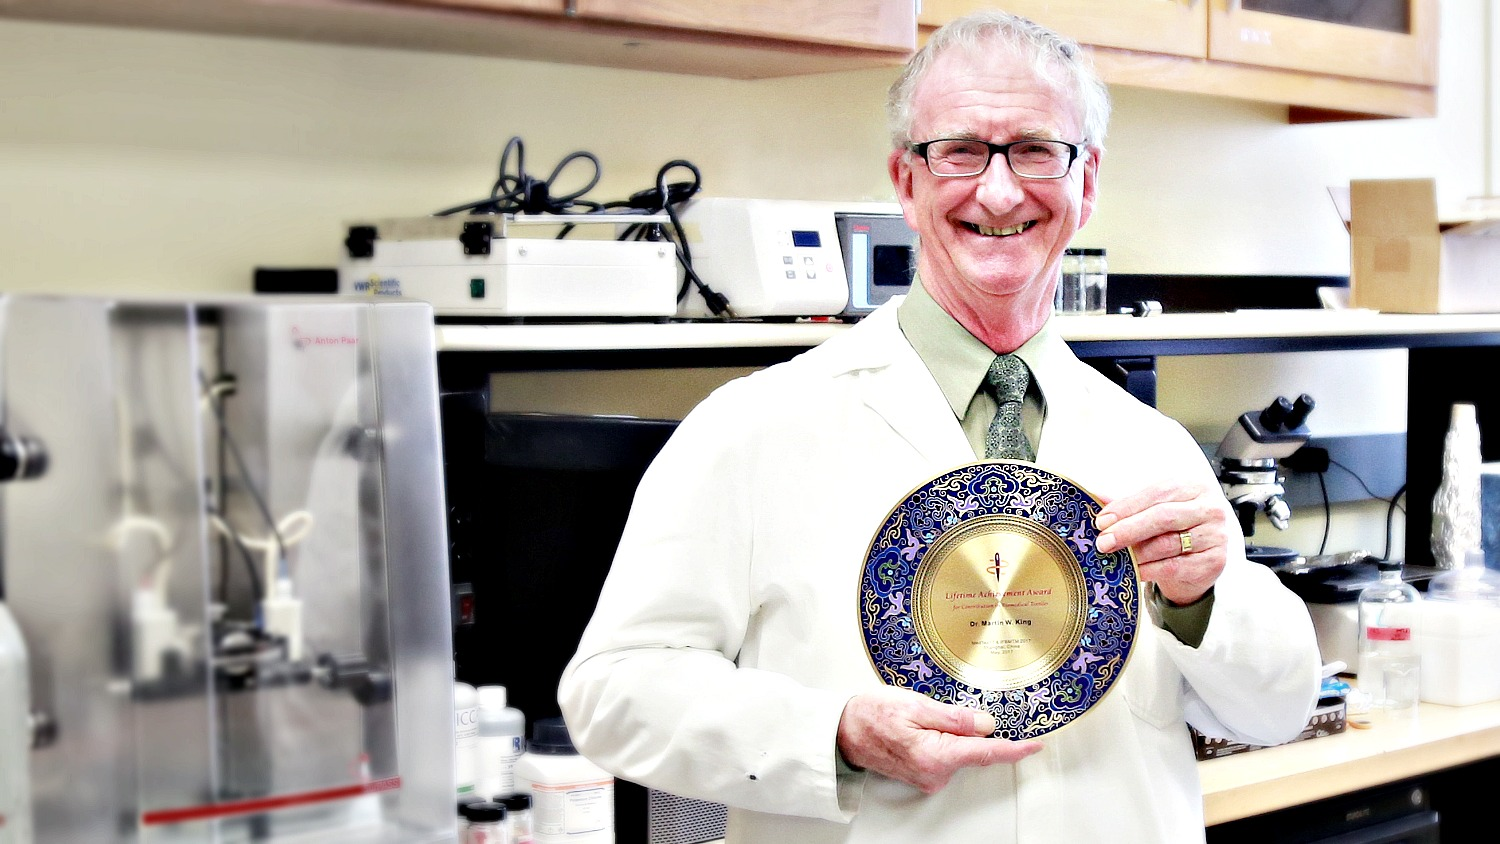 Dr. Martin King of NC State's College of Textiles wears a lab coat and holds his lifetime achievement award